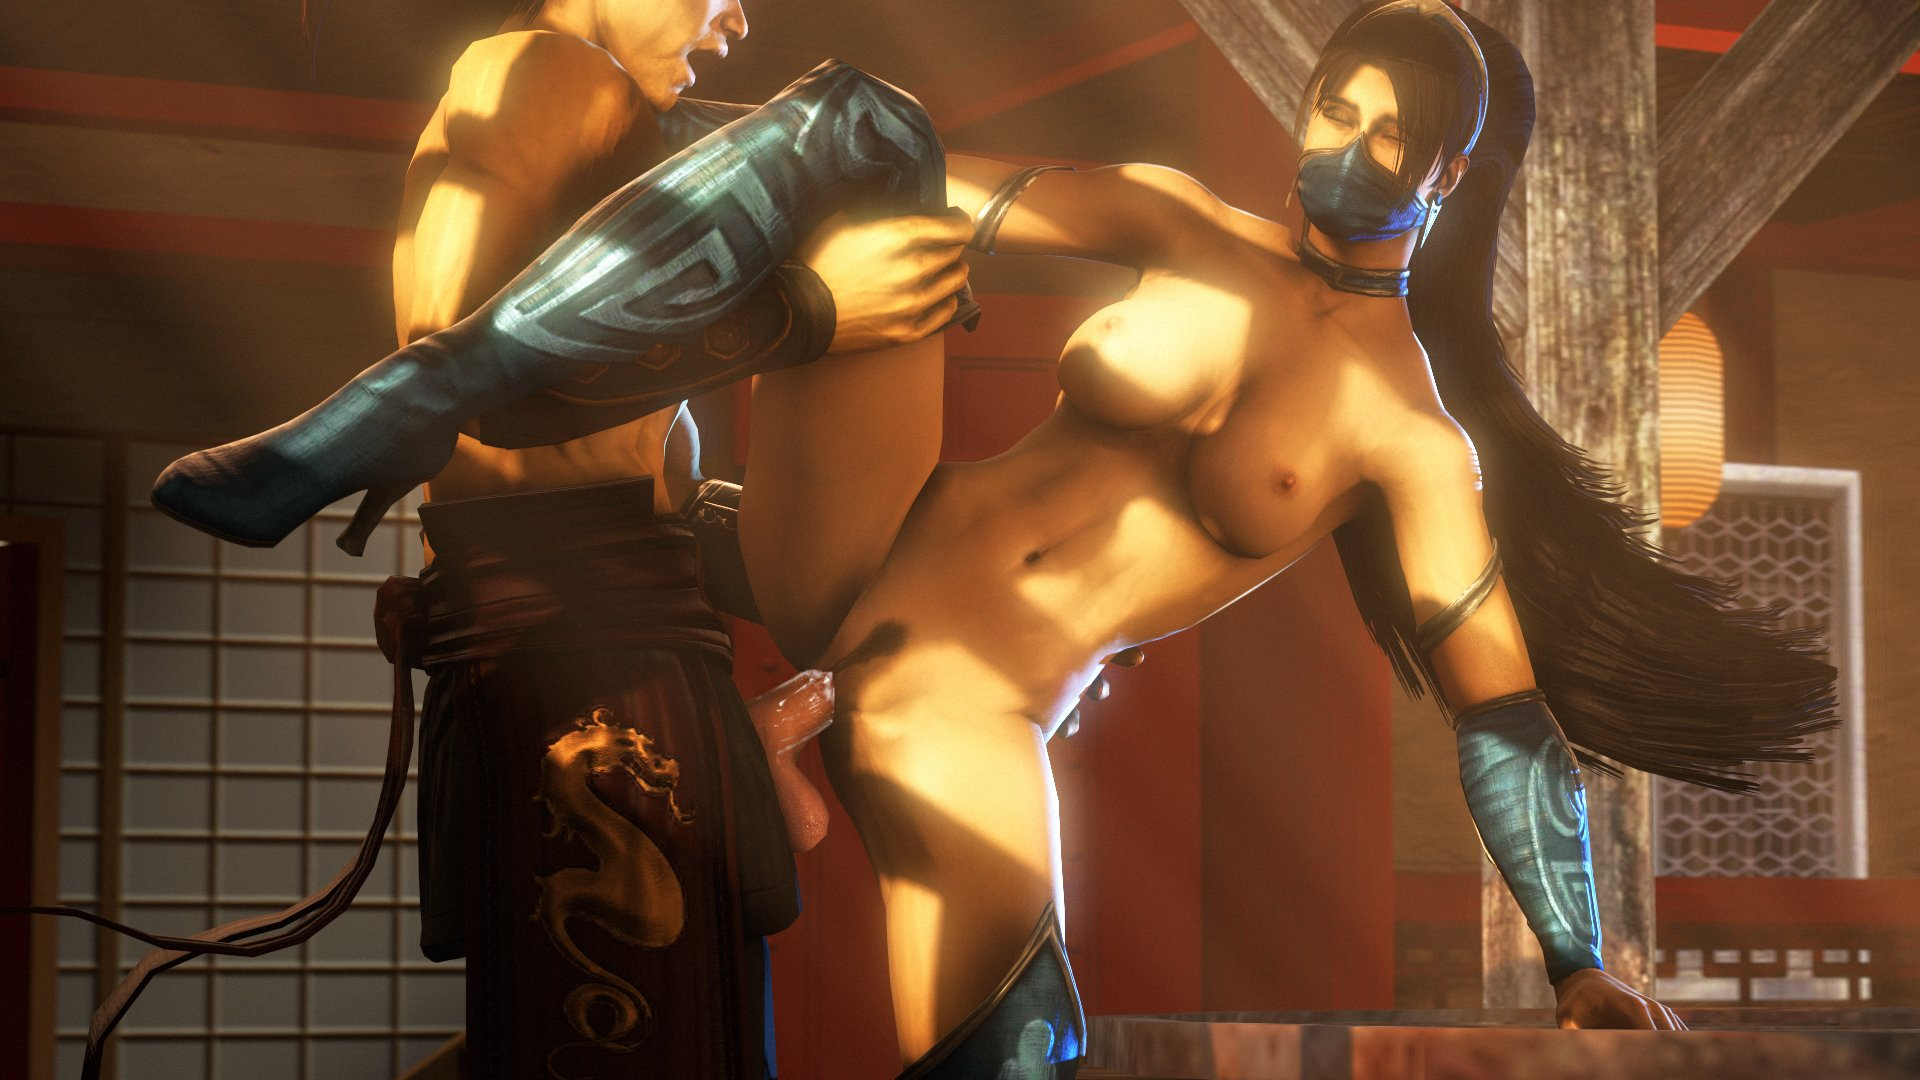 mortal kombat naked hot mileena geting fucked